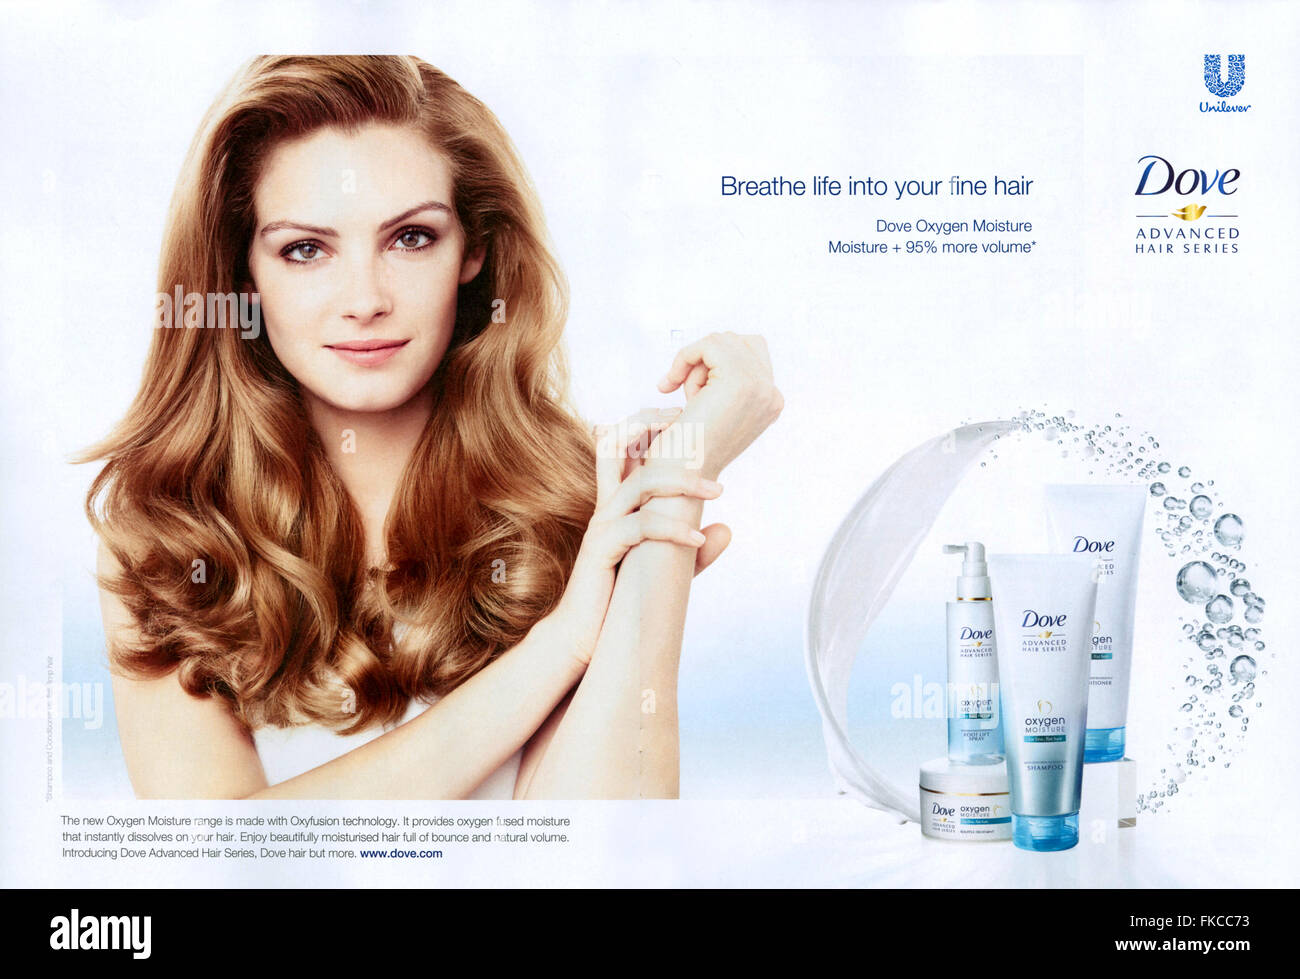 Dove Shampoo High Resolution Stock Photography And Images Alamy